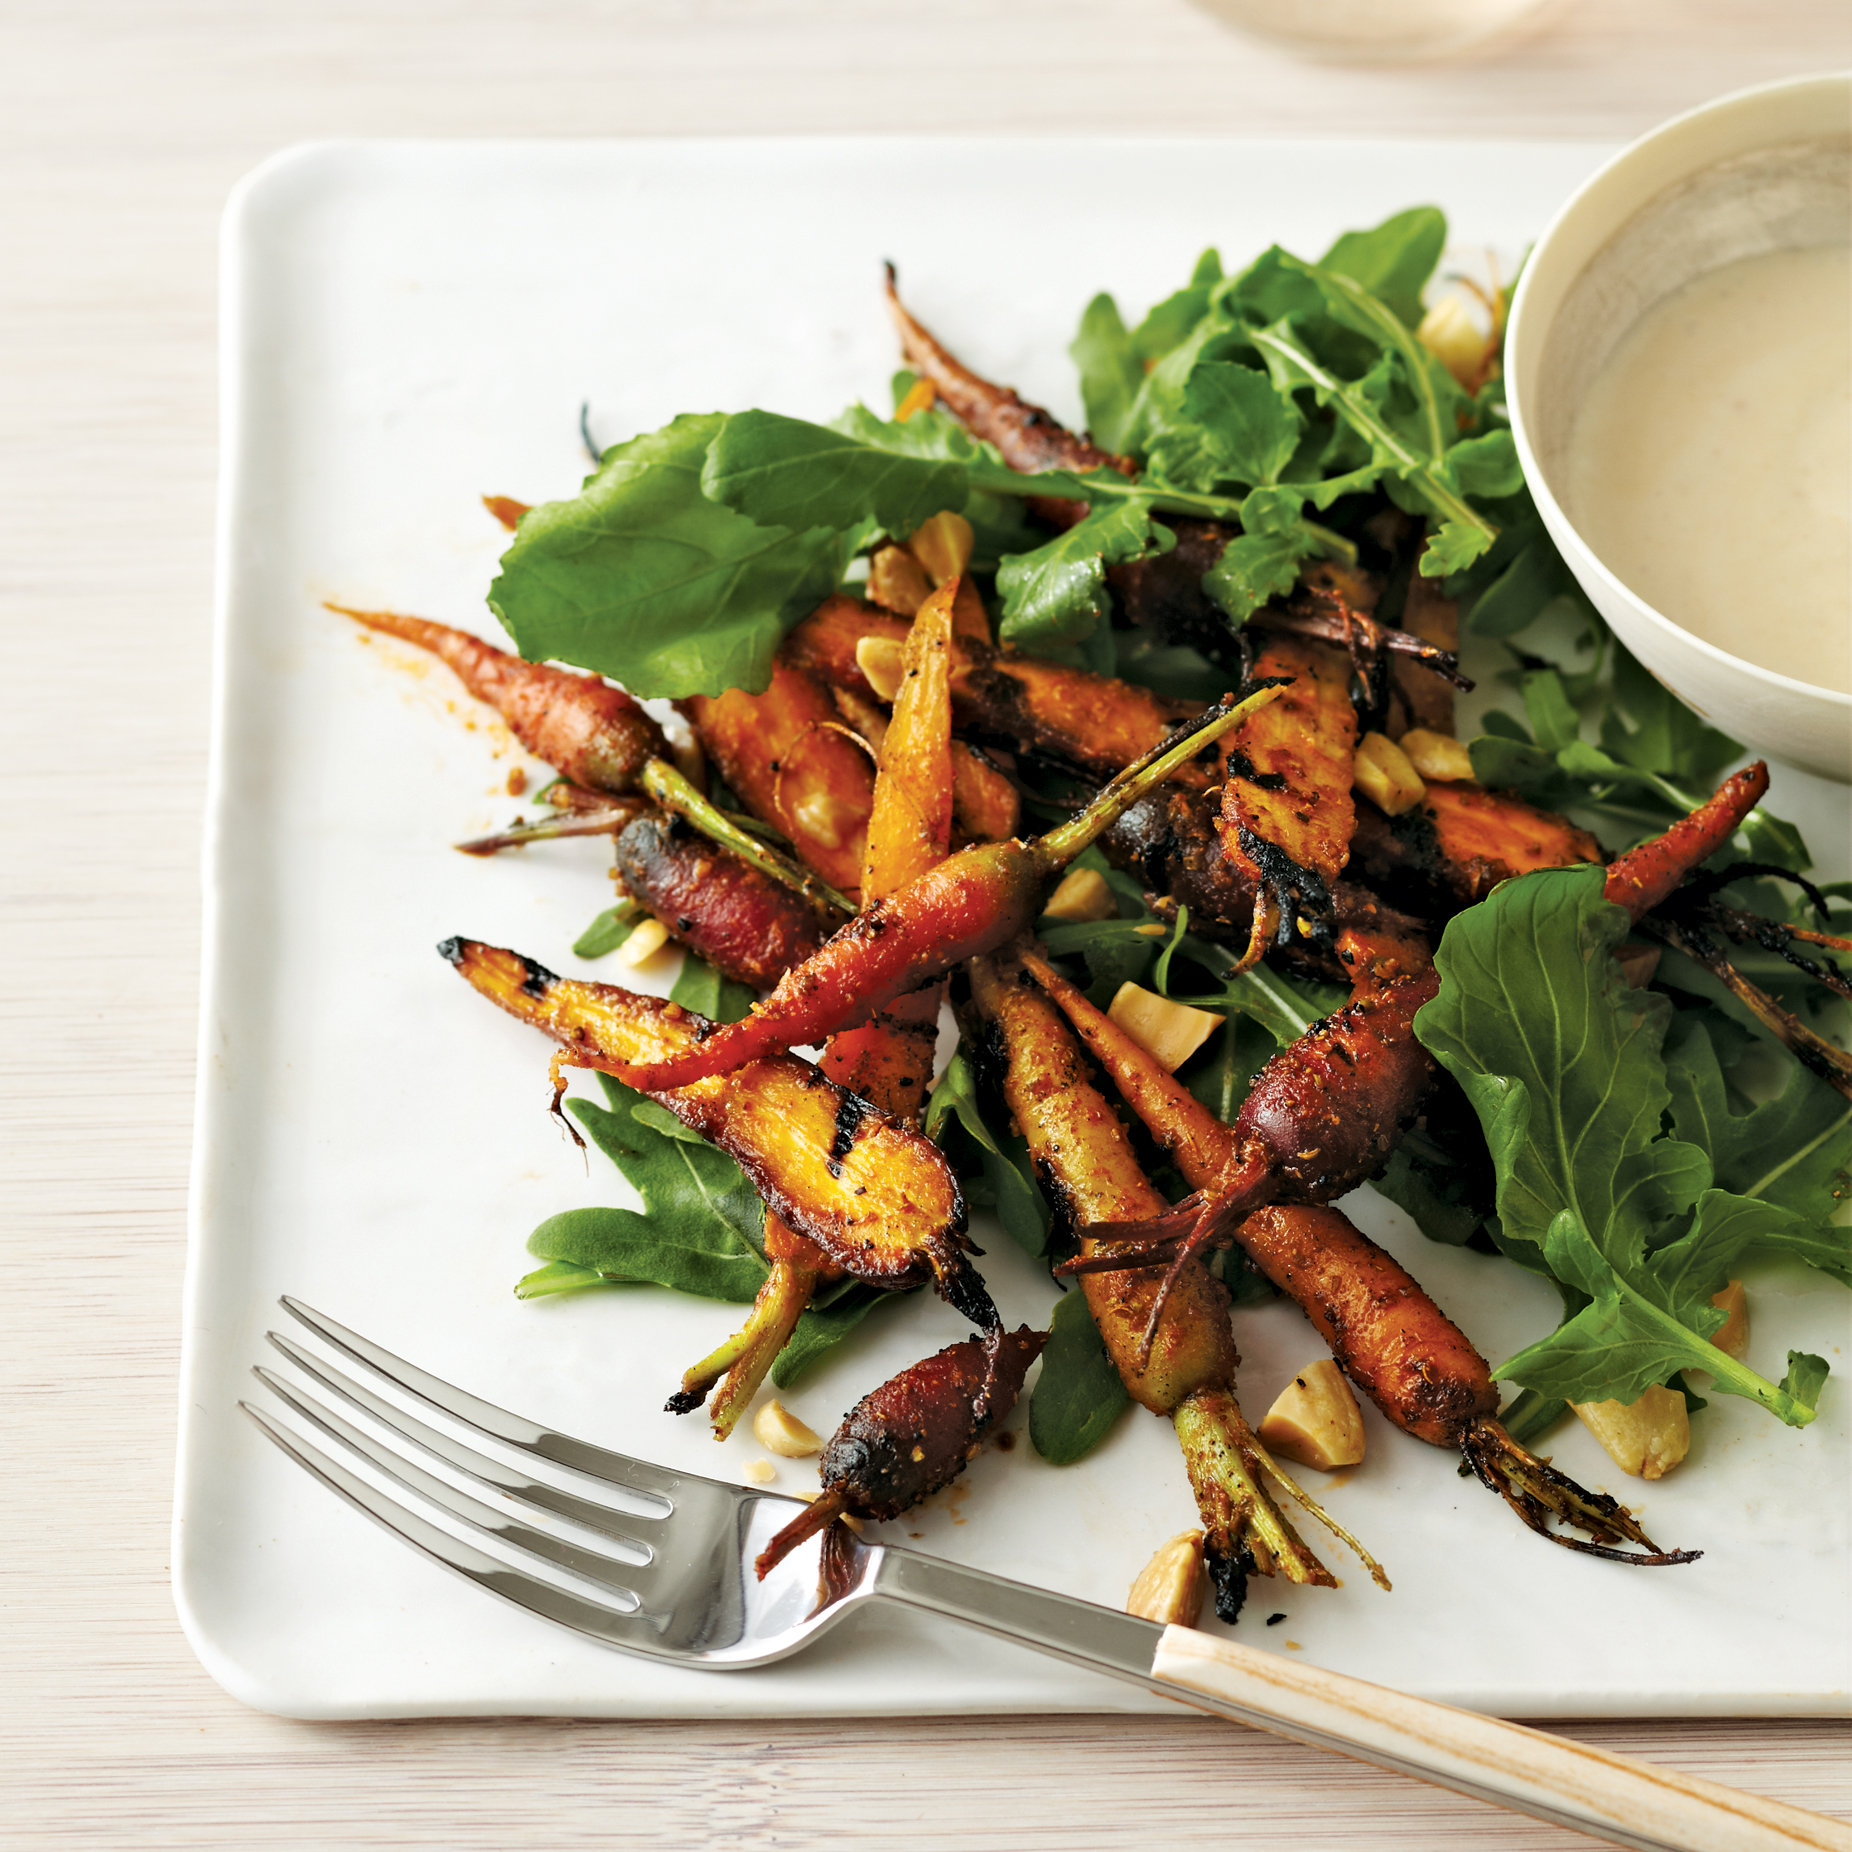 201107-r-Grilled-Carrot-Salad-with-Brown-Butter-Vinaigrette.jpg